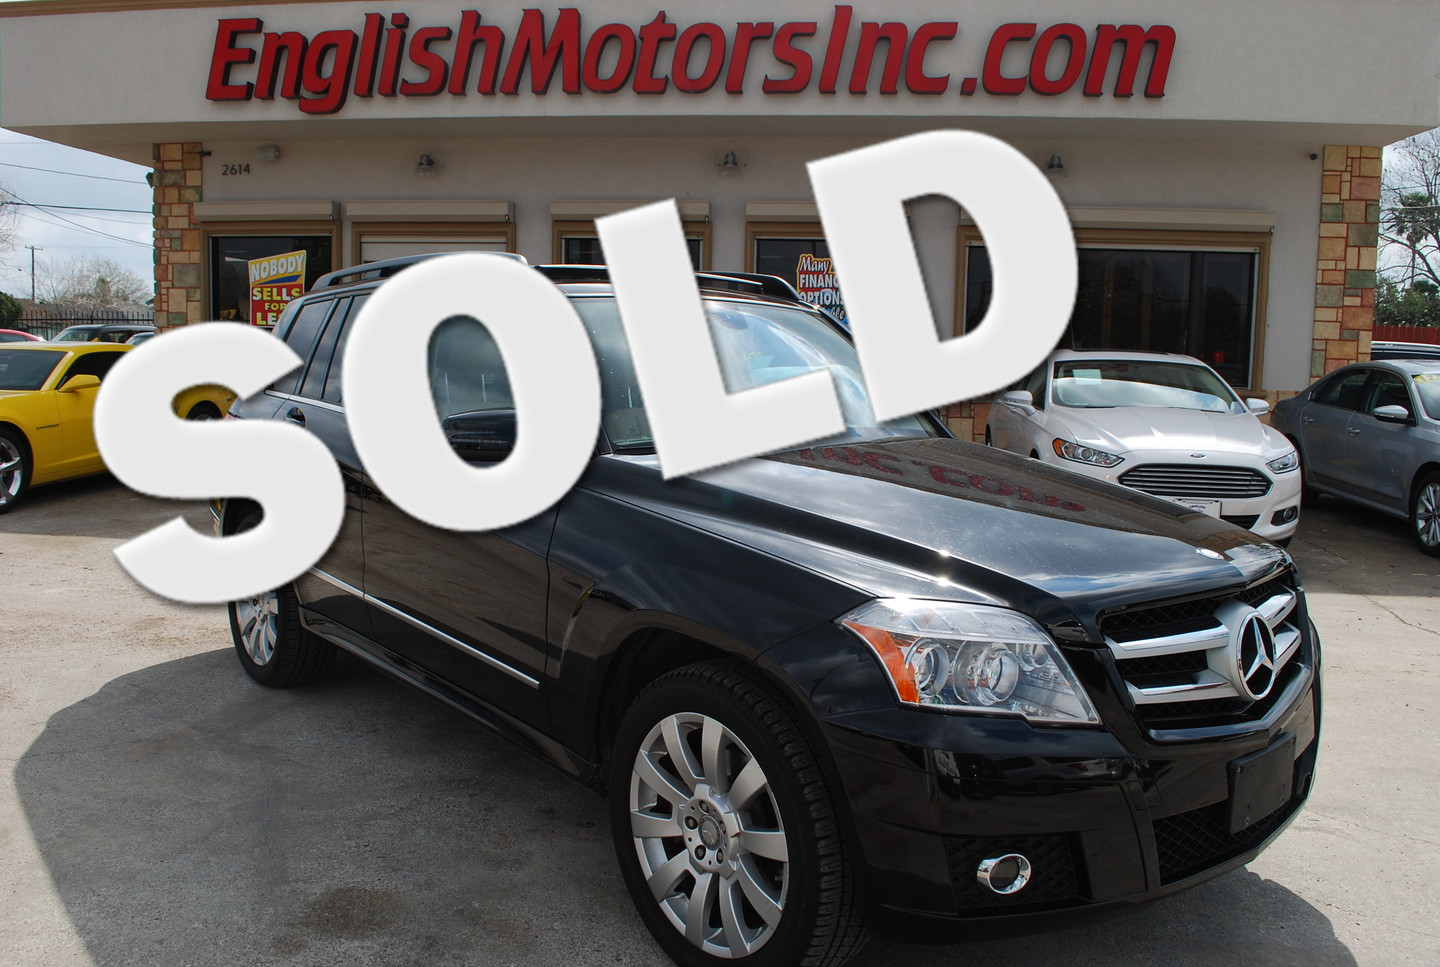 2012 mercedes benz glk350 brownsville tx english motors English motors inc